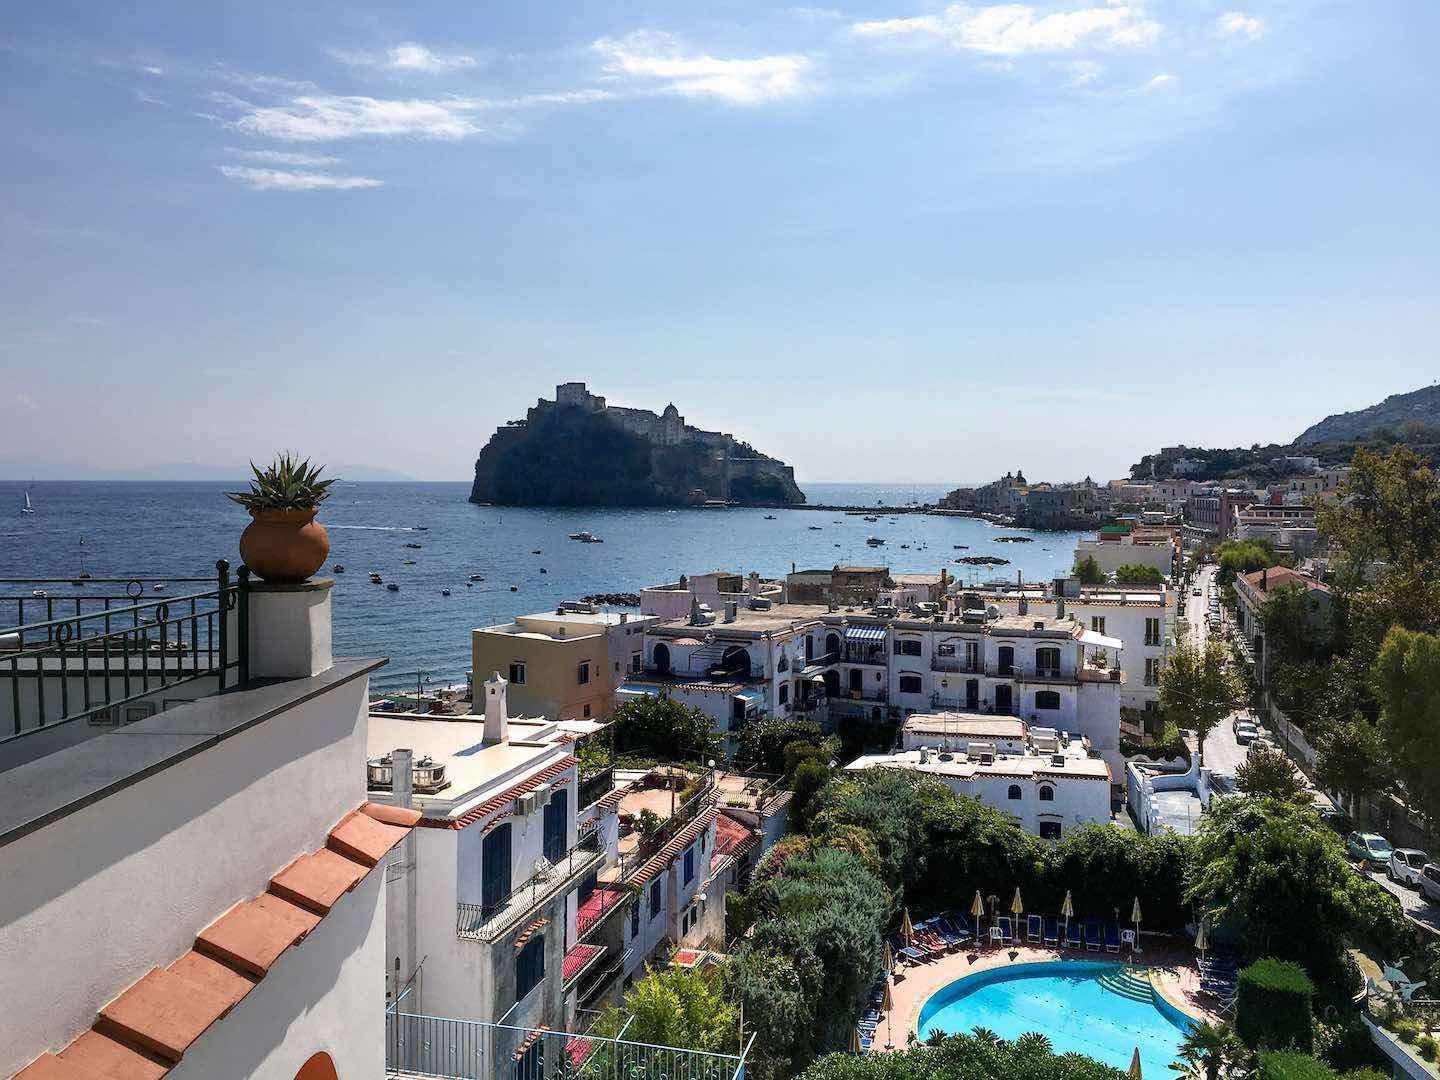 View from Hotel Ulisse, Ischia | Image © ExpatAlli.com